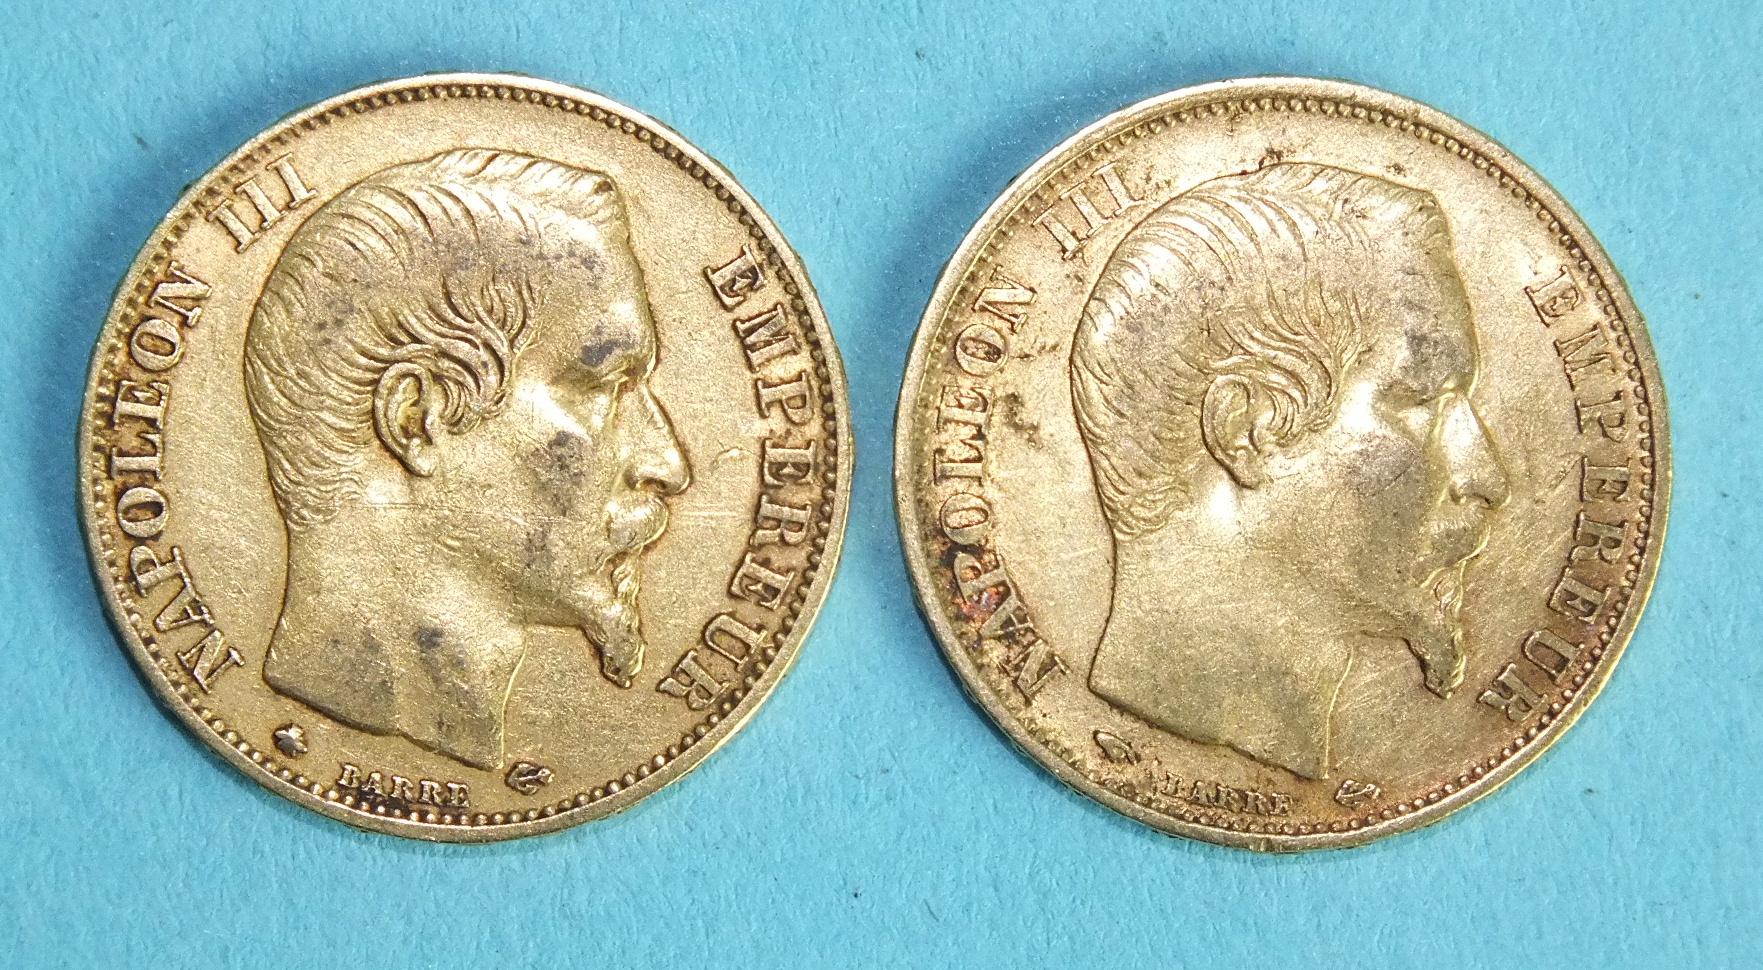 Lot 387 - Two French Napoleon III 20-Francs coins, 1859, (2).